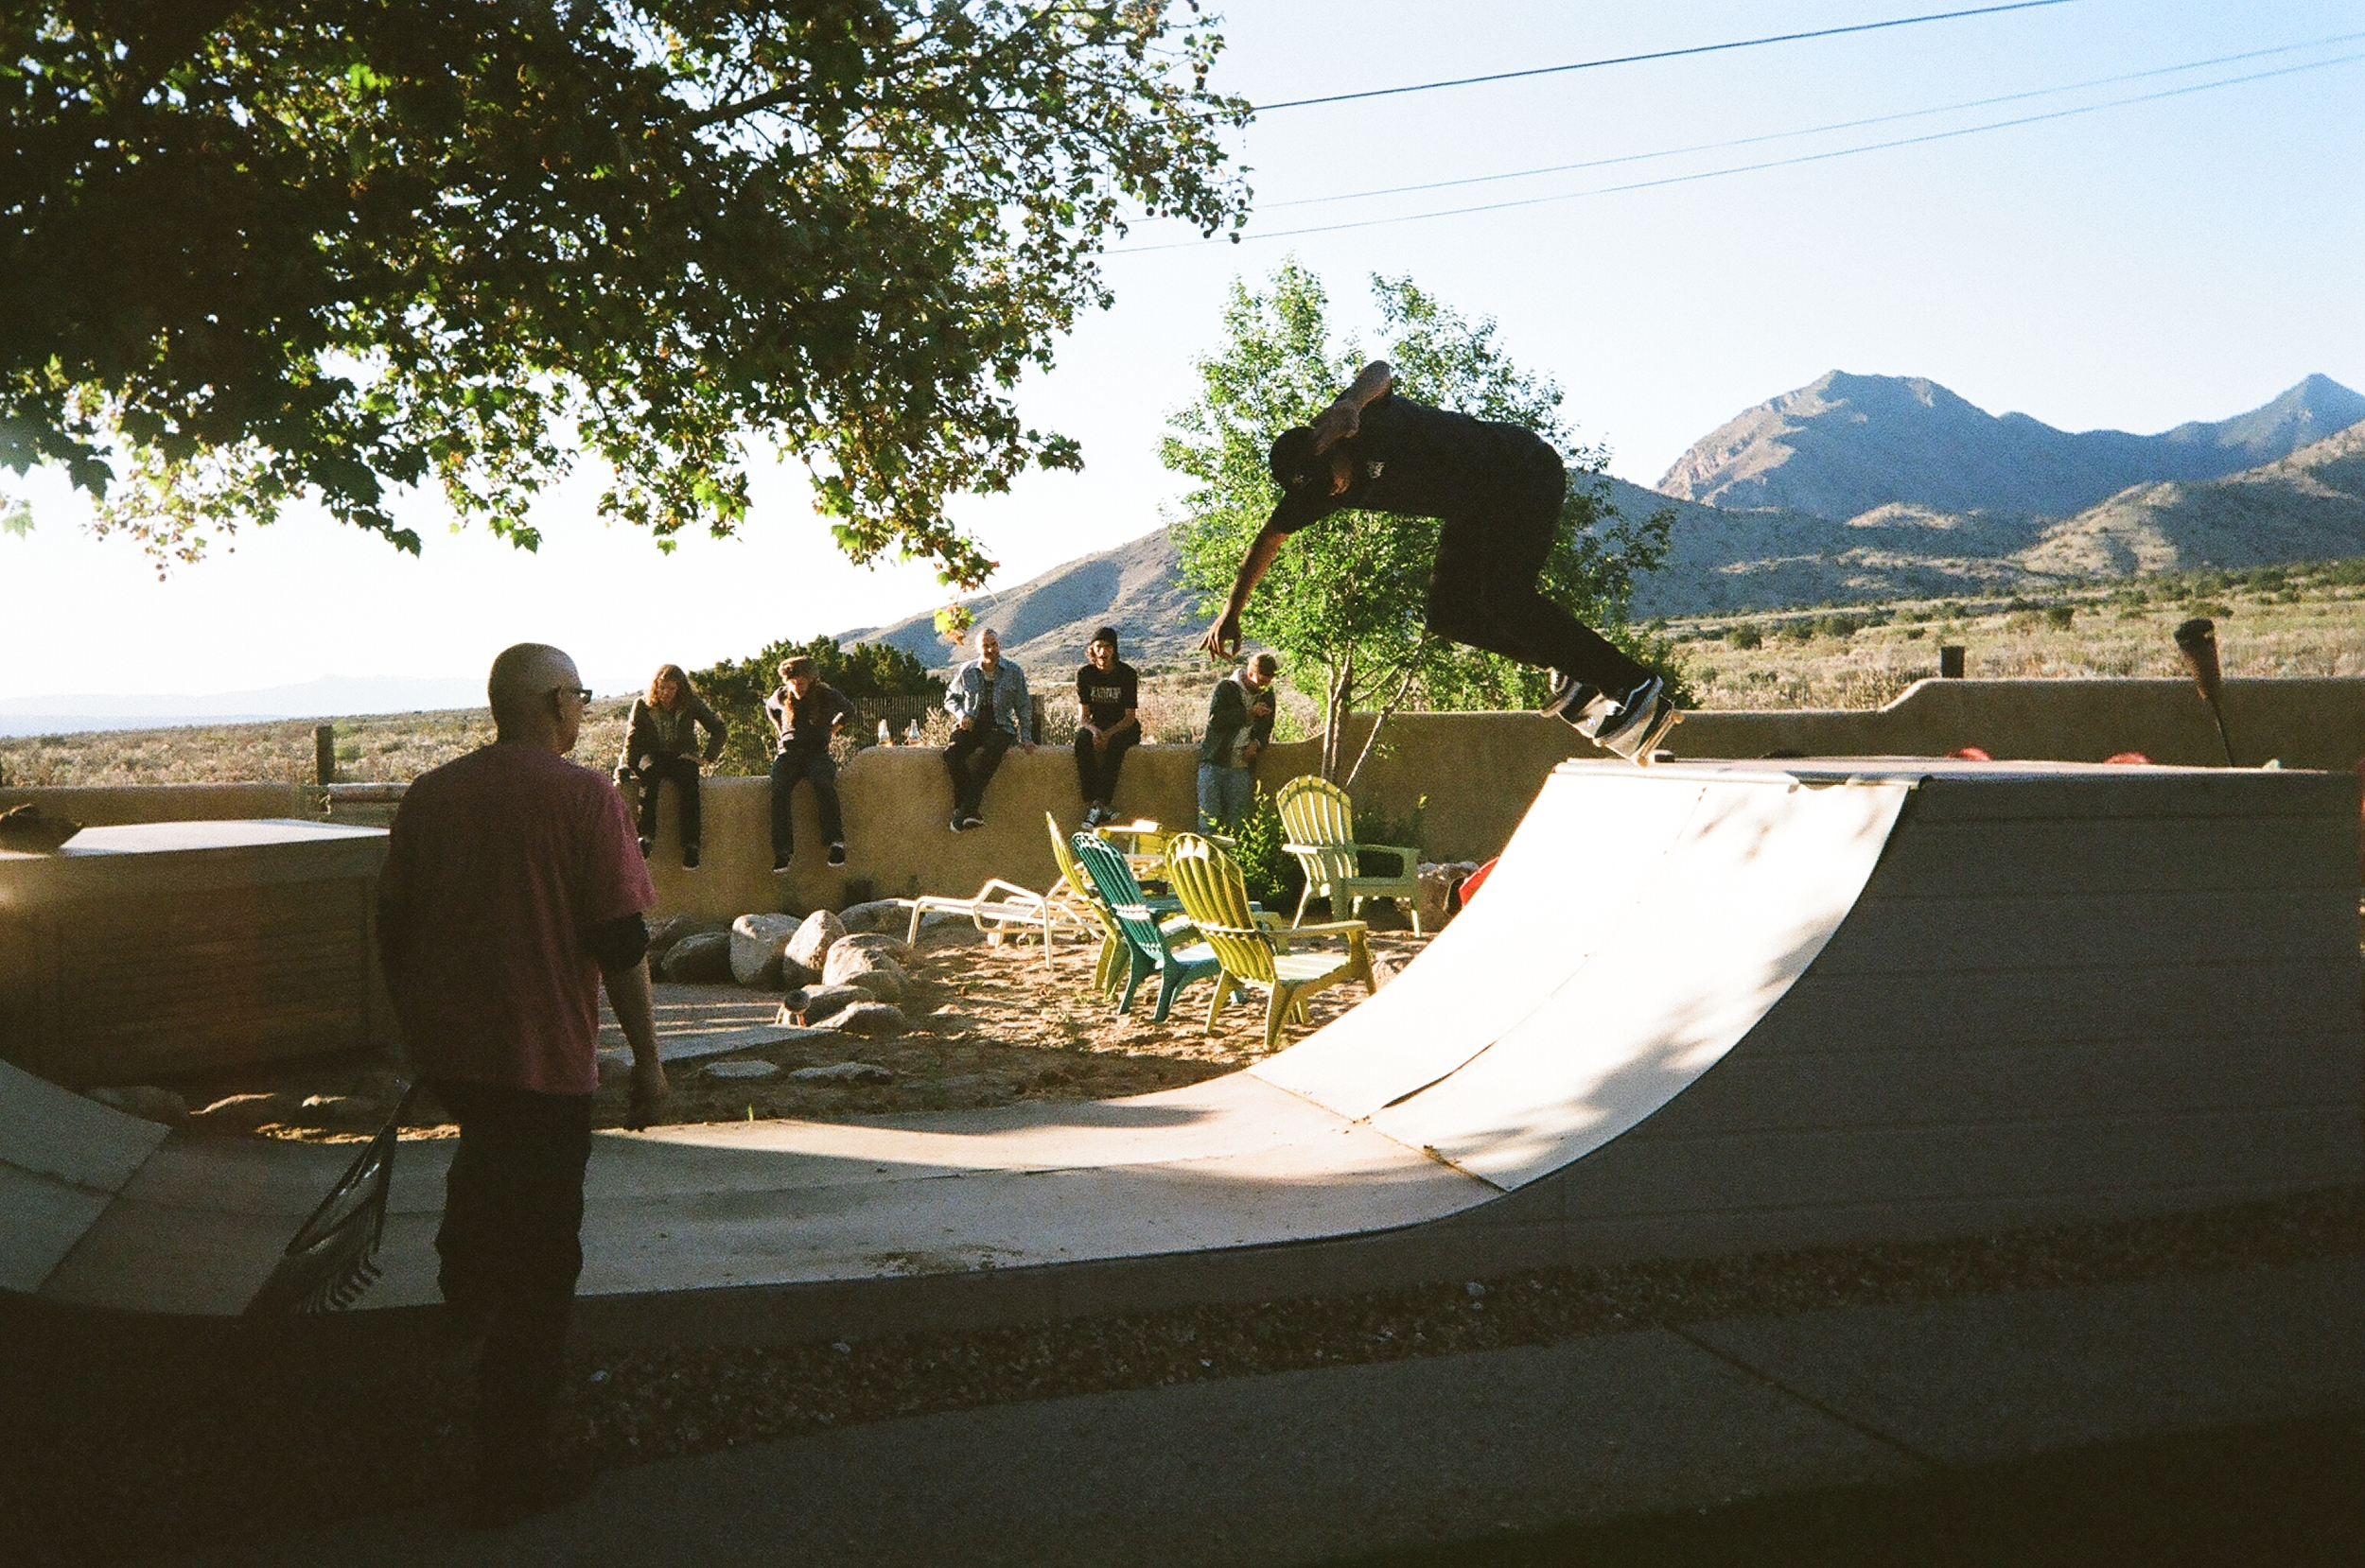 """Deathwish summer trip, folks back yard. my dad checking the scene most like coordinating a BBQ for the wall boys while JBone back d's our childhood ramp. Paradise."""